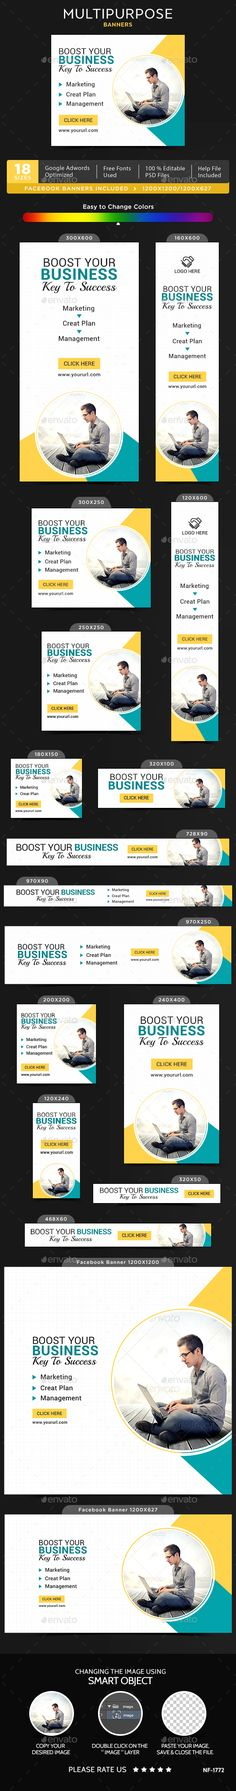 Multipurpose Banners   Banner template, Banners and Web banners